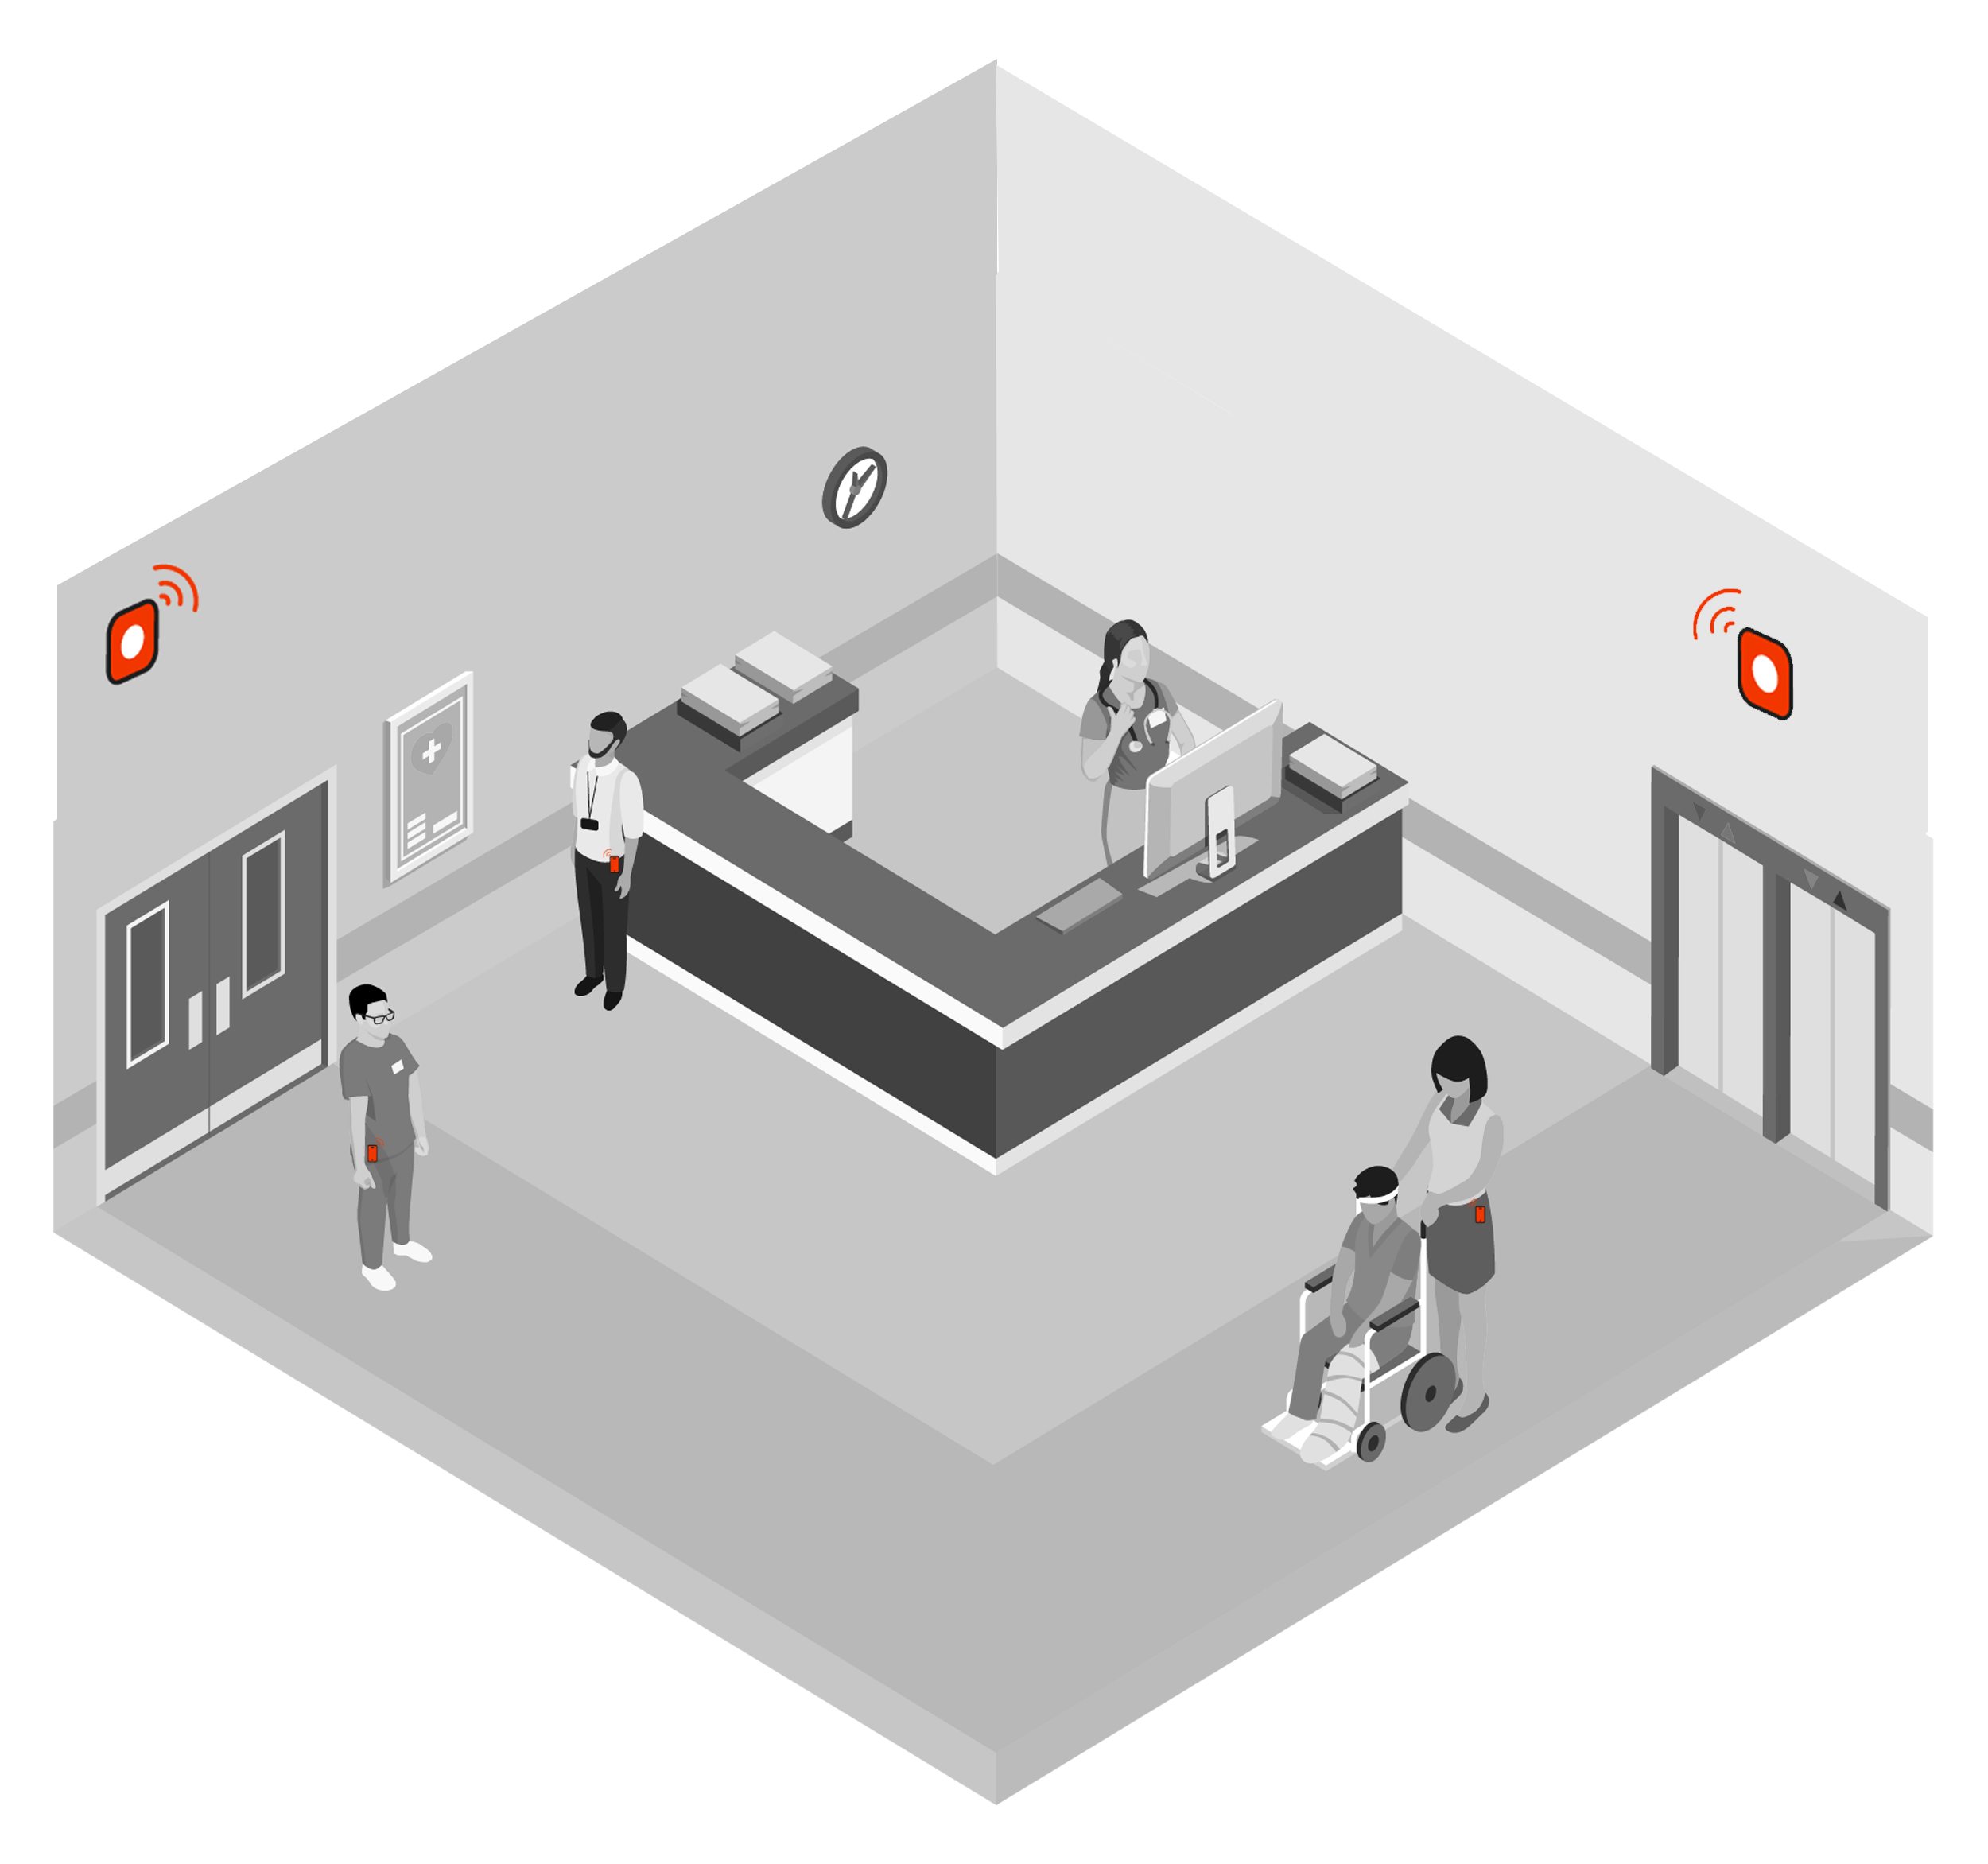 hospital personnel tracking system